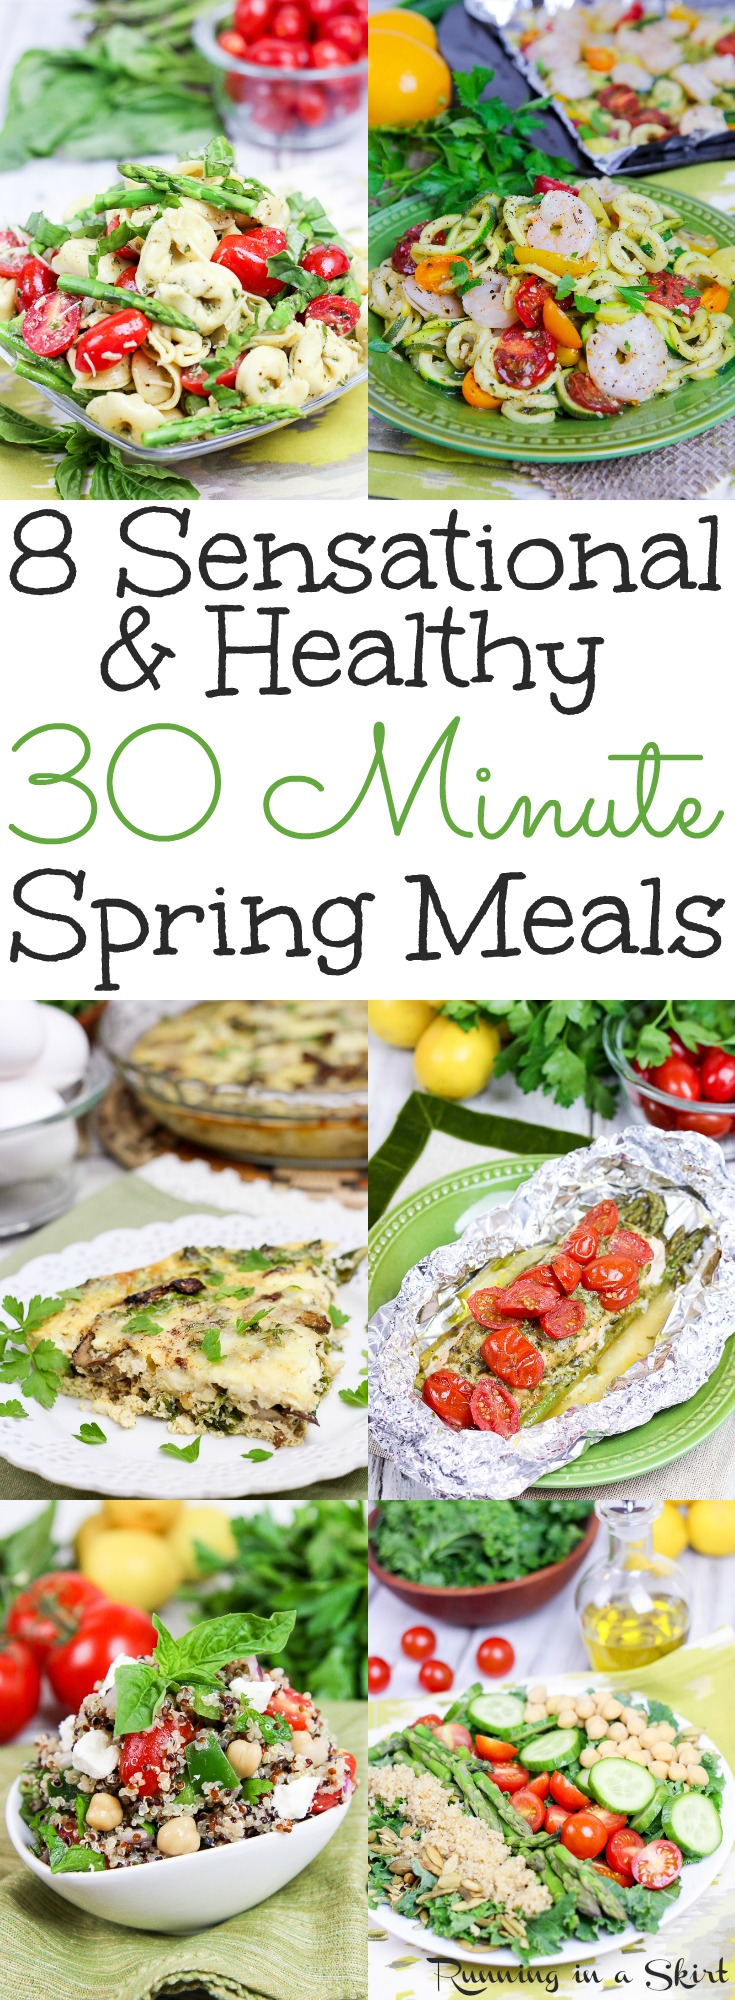 8 30 Minute Healthy Spring Meals - includes simple vegetarian & pescatarian recipes and lunch ideas for families.  Packed with veggies and some recipes use greek yogurt!  Includes low carb, paleo, vegan and dairy free options. / Running in a Skirt via @juliewunder